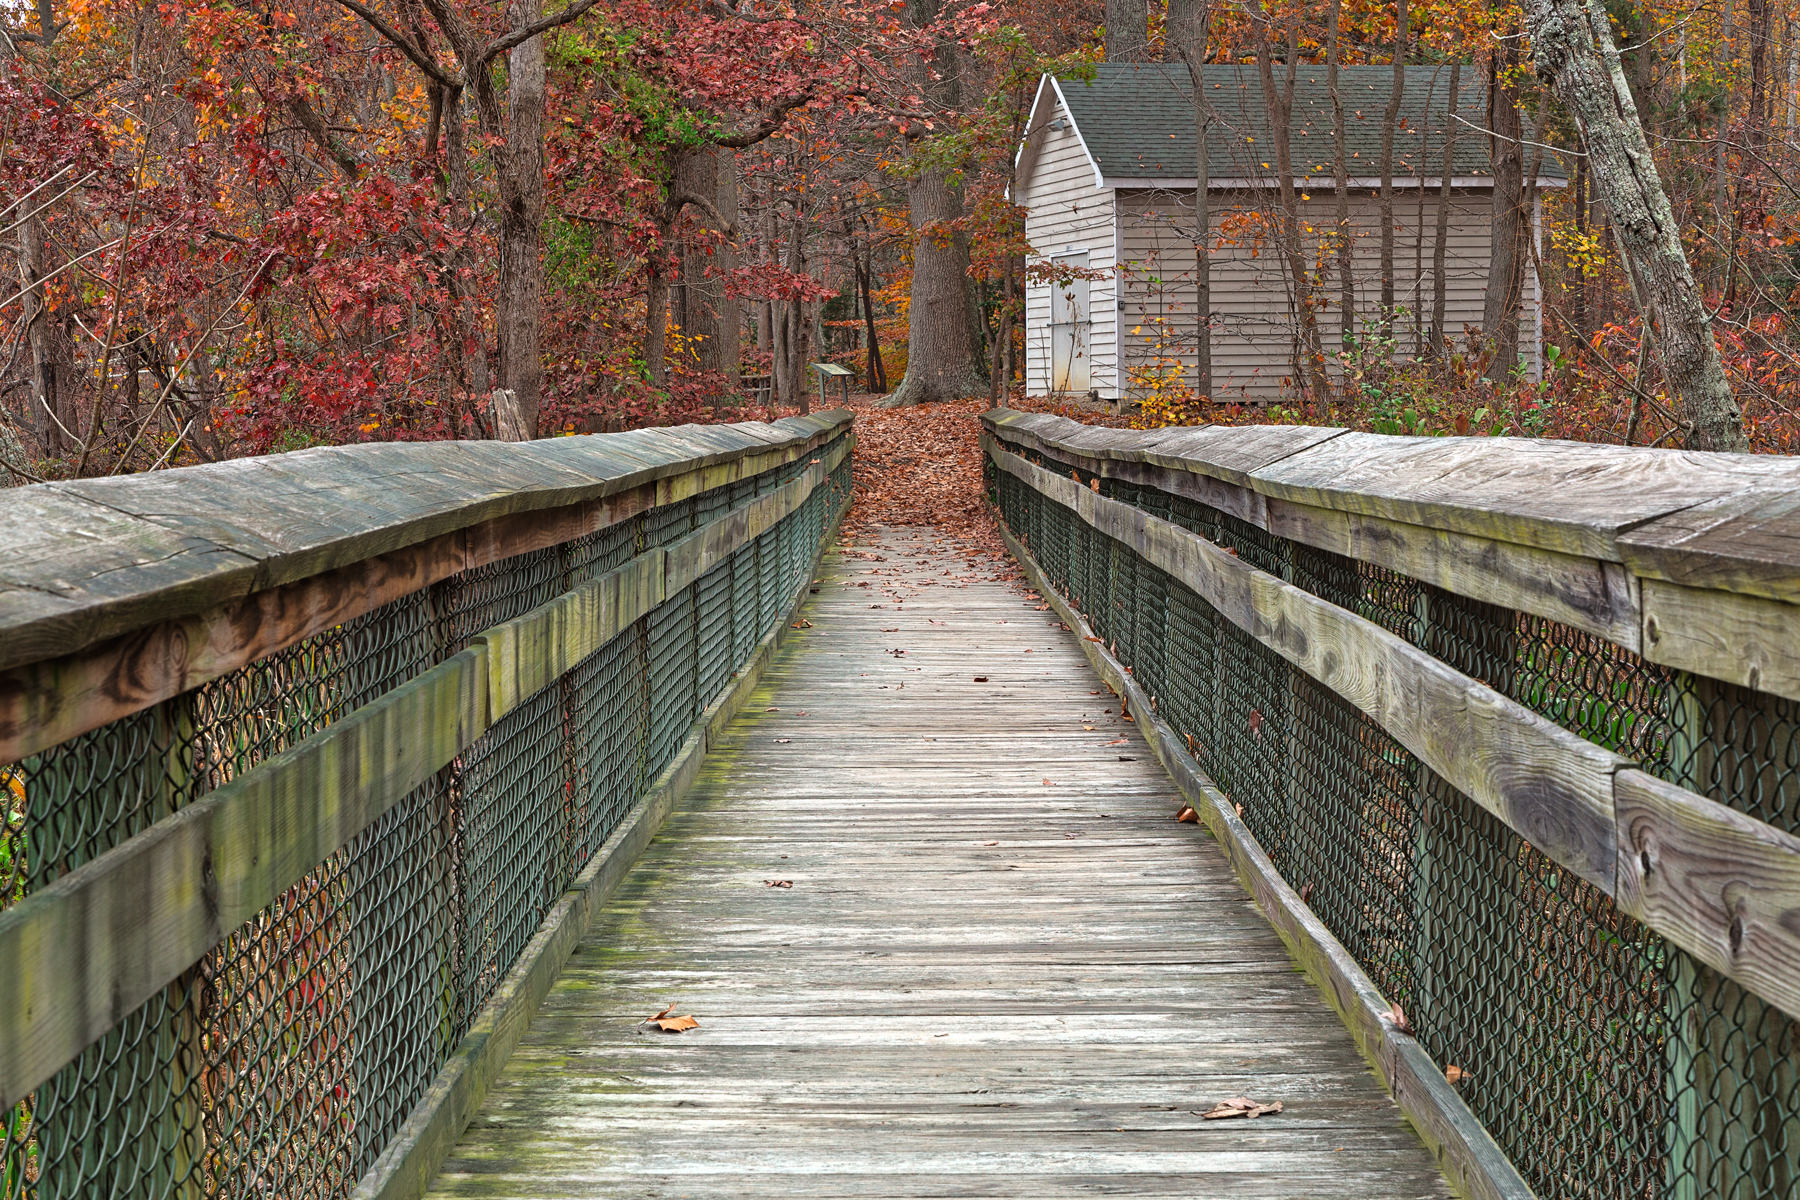 Rustic autumn boardwalk - hdr photo